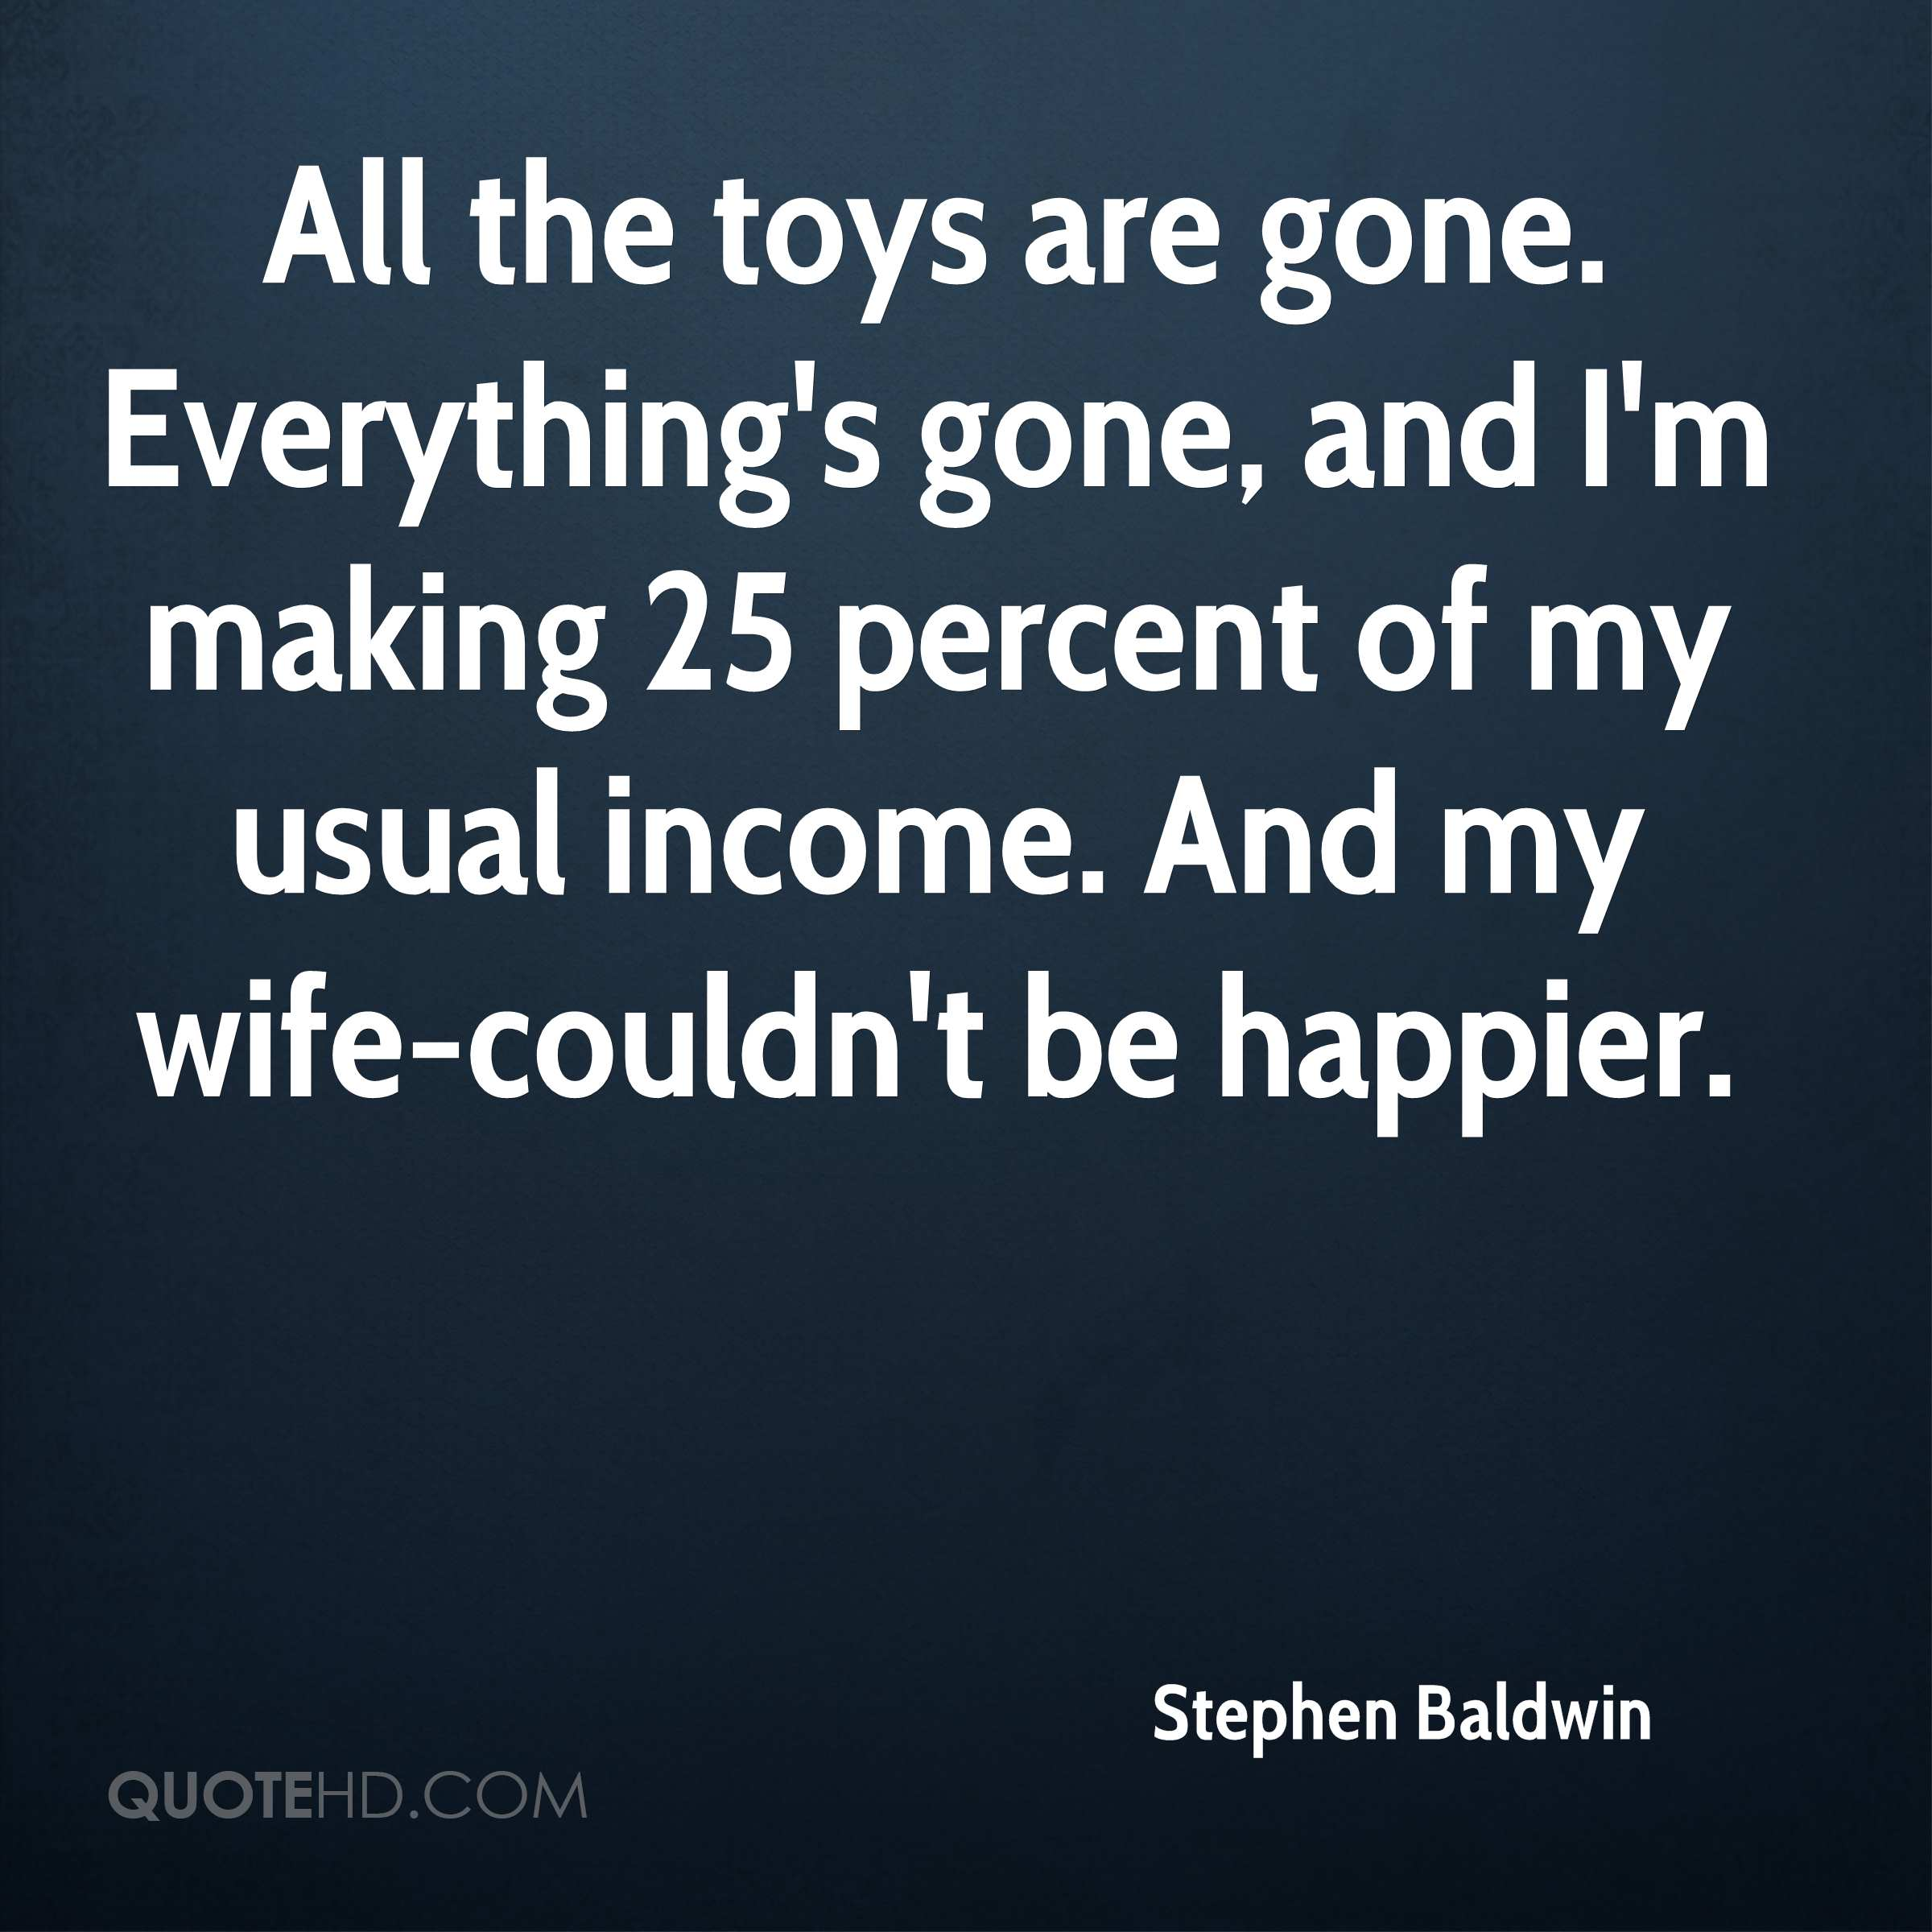 All the toys are gone. Everything's gone, and I'm making 25 percent of my usual income. And my wife-couldn't be happier.